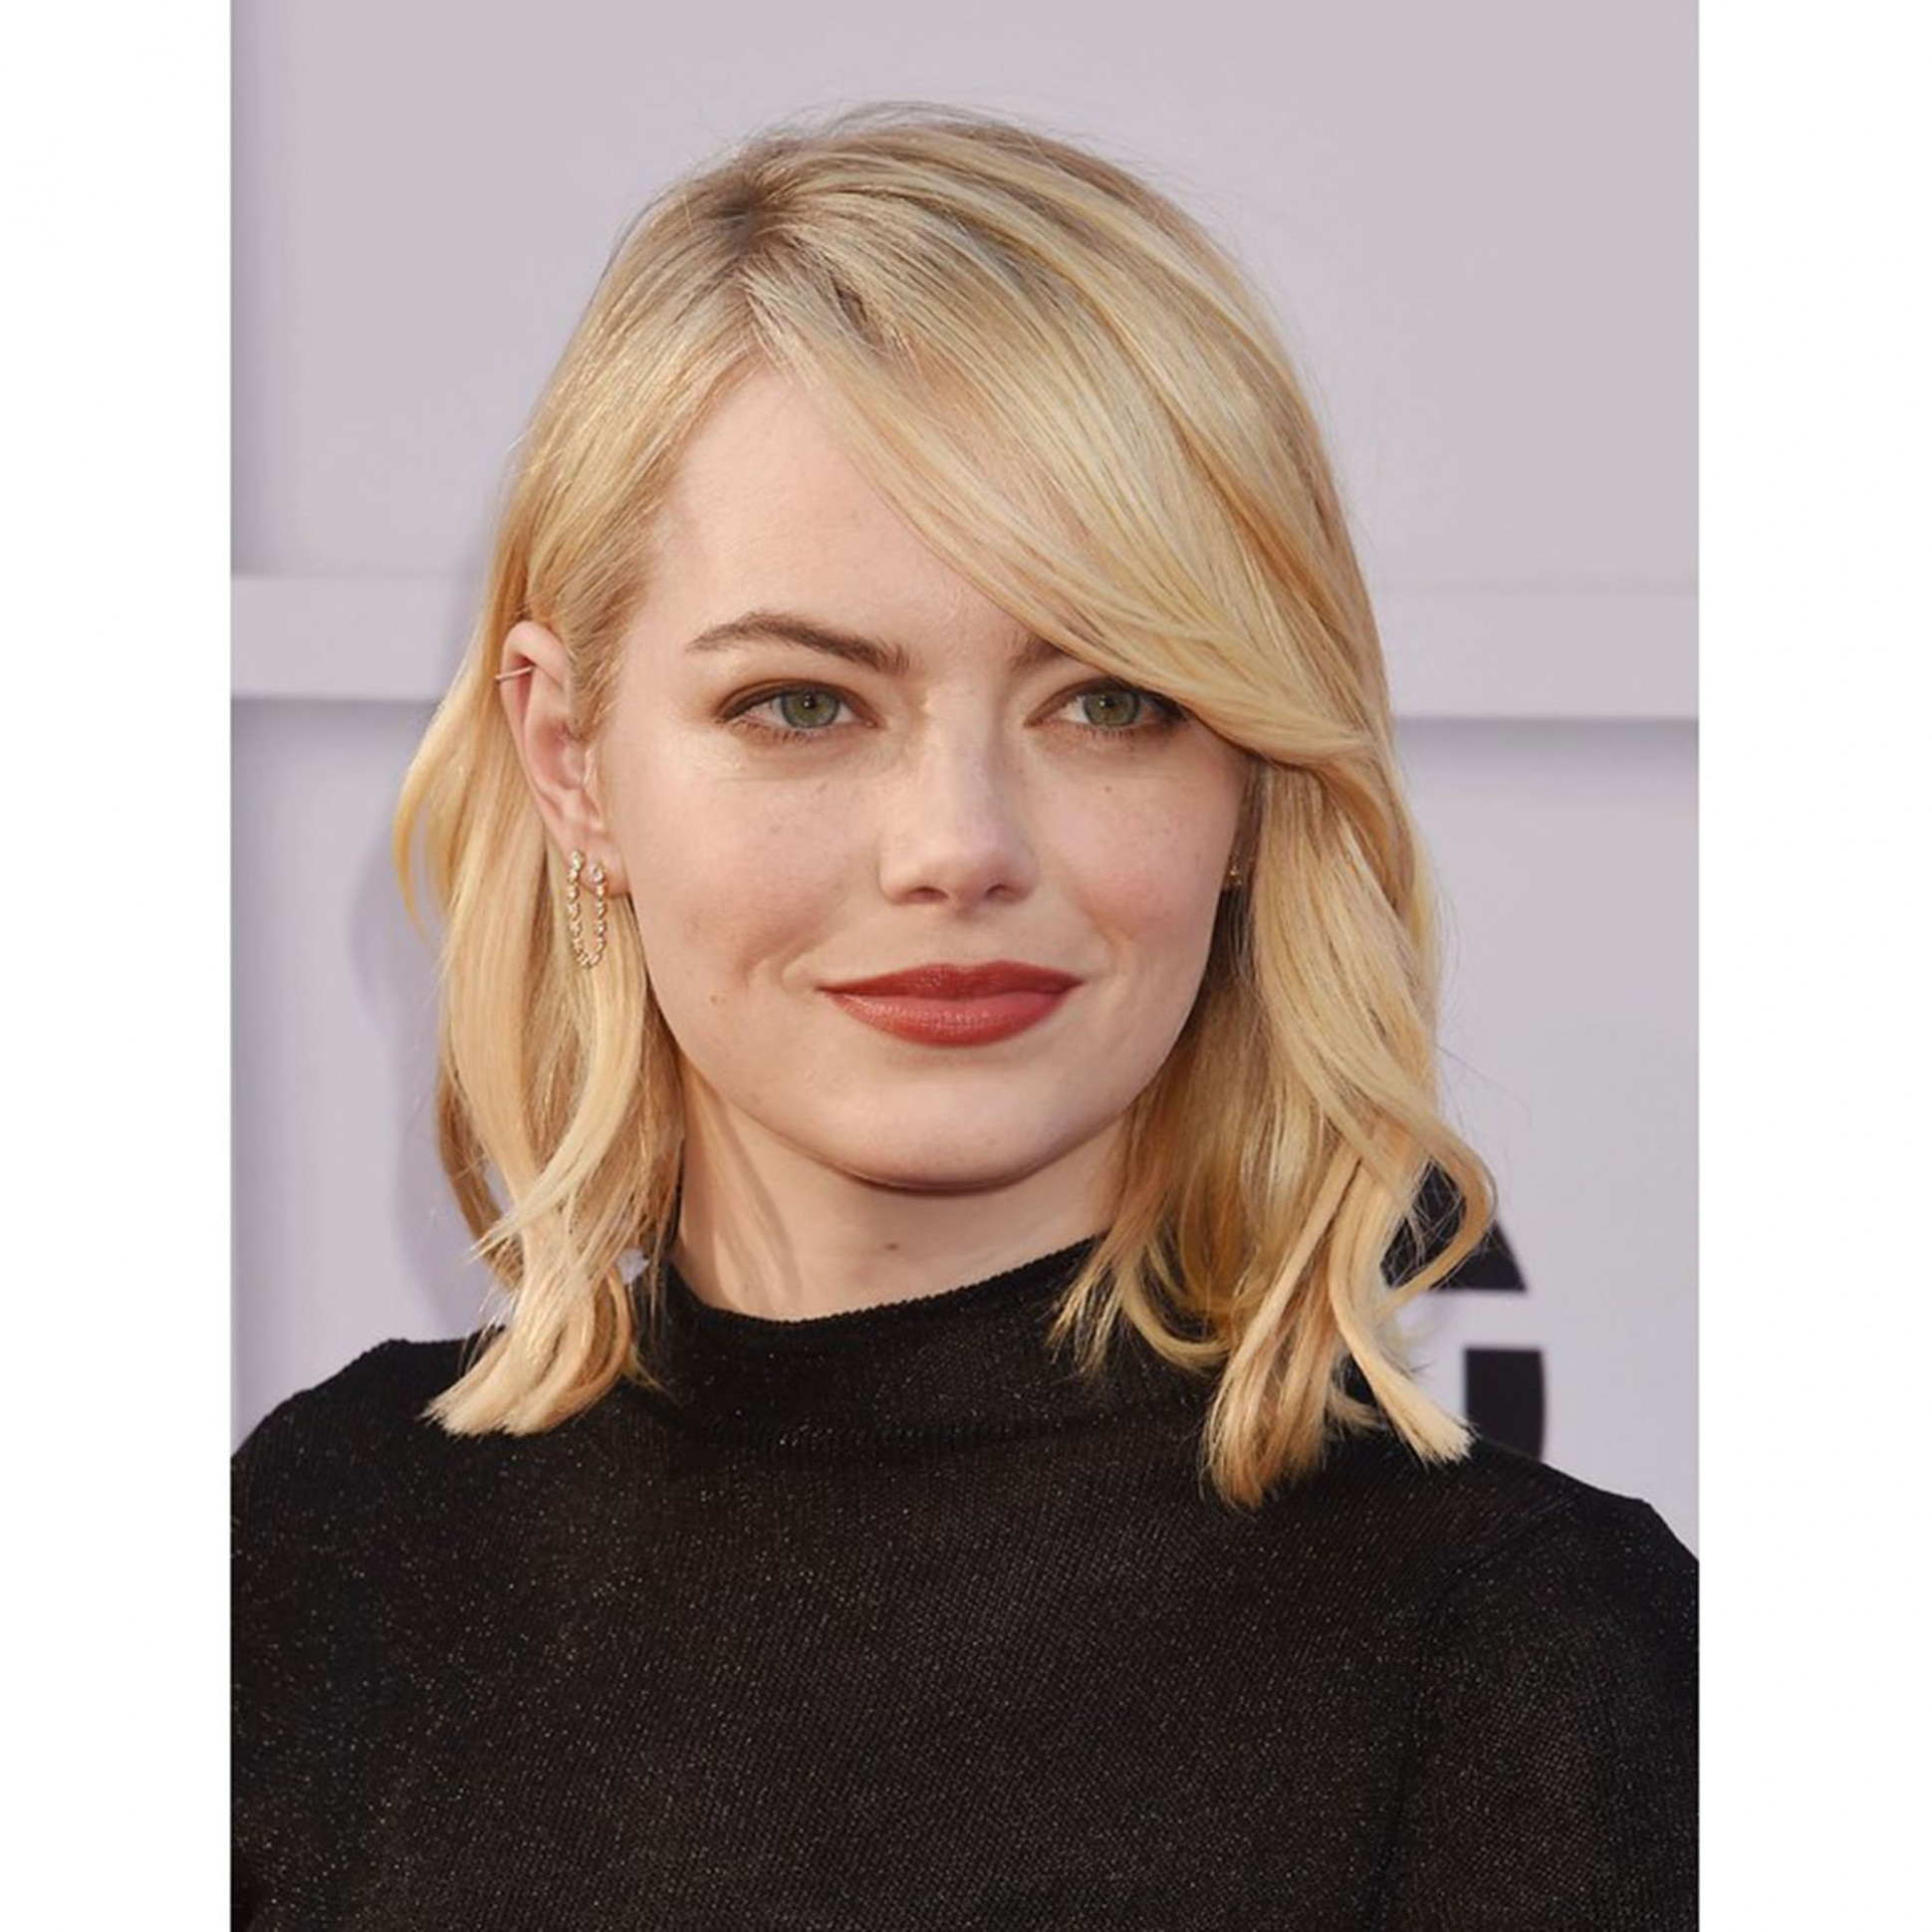 The 11 Best Haircuts For Round Faces, According To Stylists Allure Fringe For Round Face